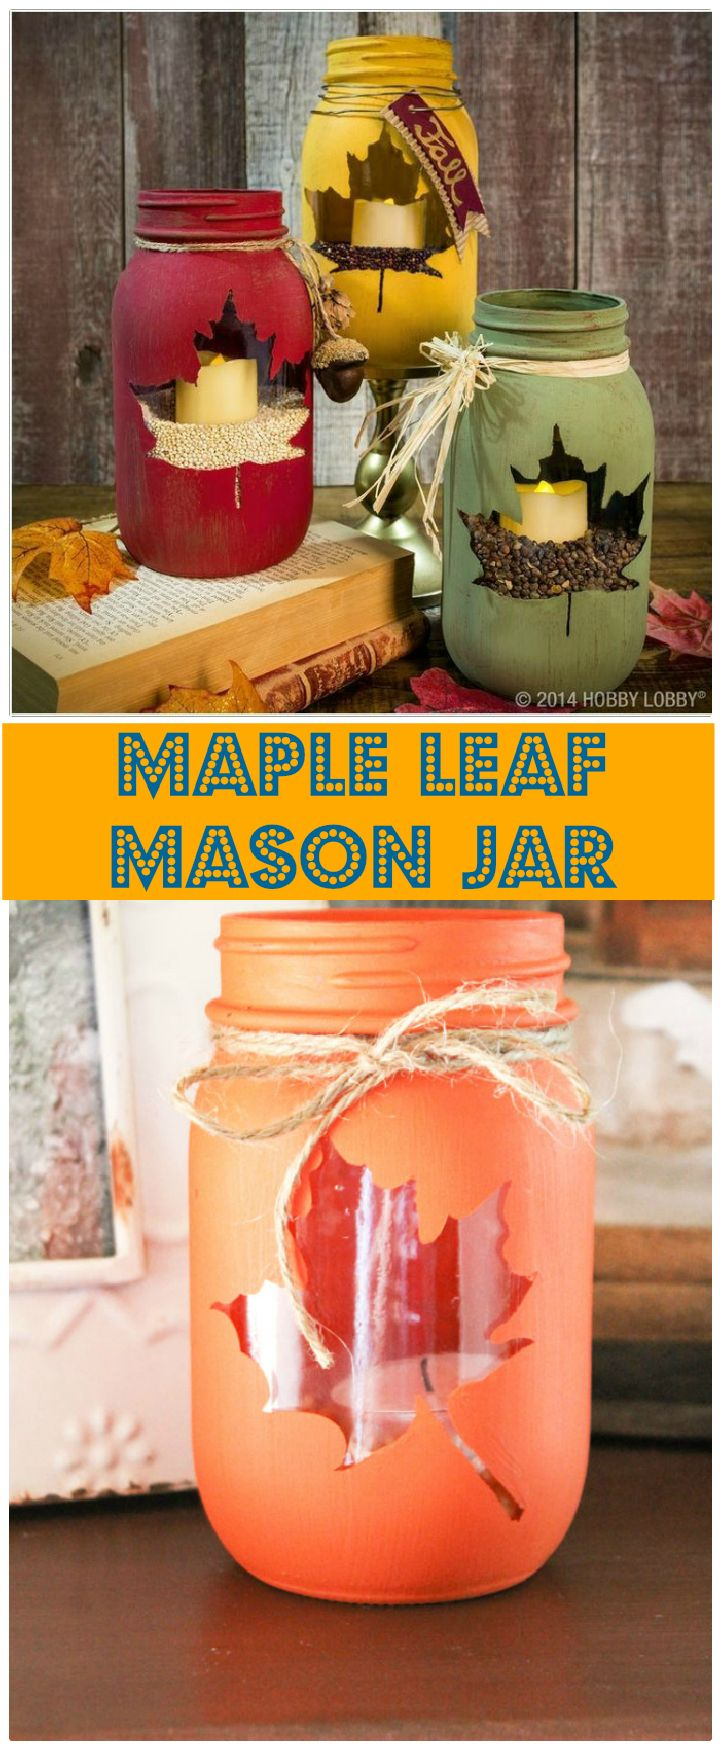 Maple Leaf Mason Jars - mason jar craft ideas | mason jar craft ideas diy | mason jar craft ideas christmas | mason jar craft ideas decor | mason jar craft ideas for kids